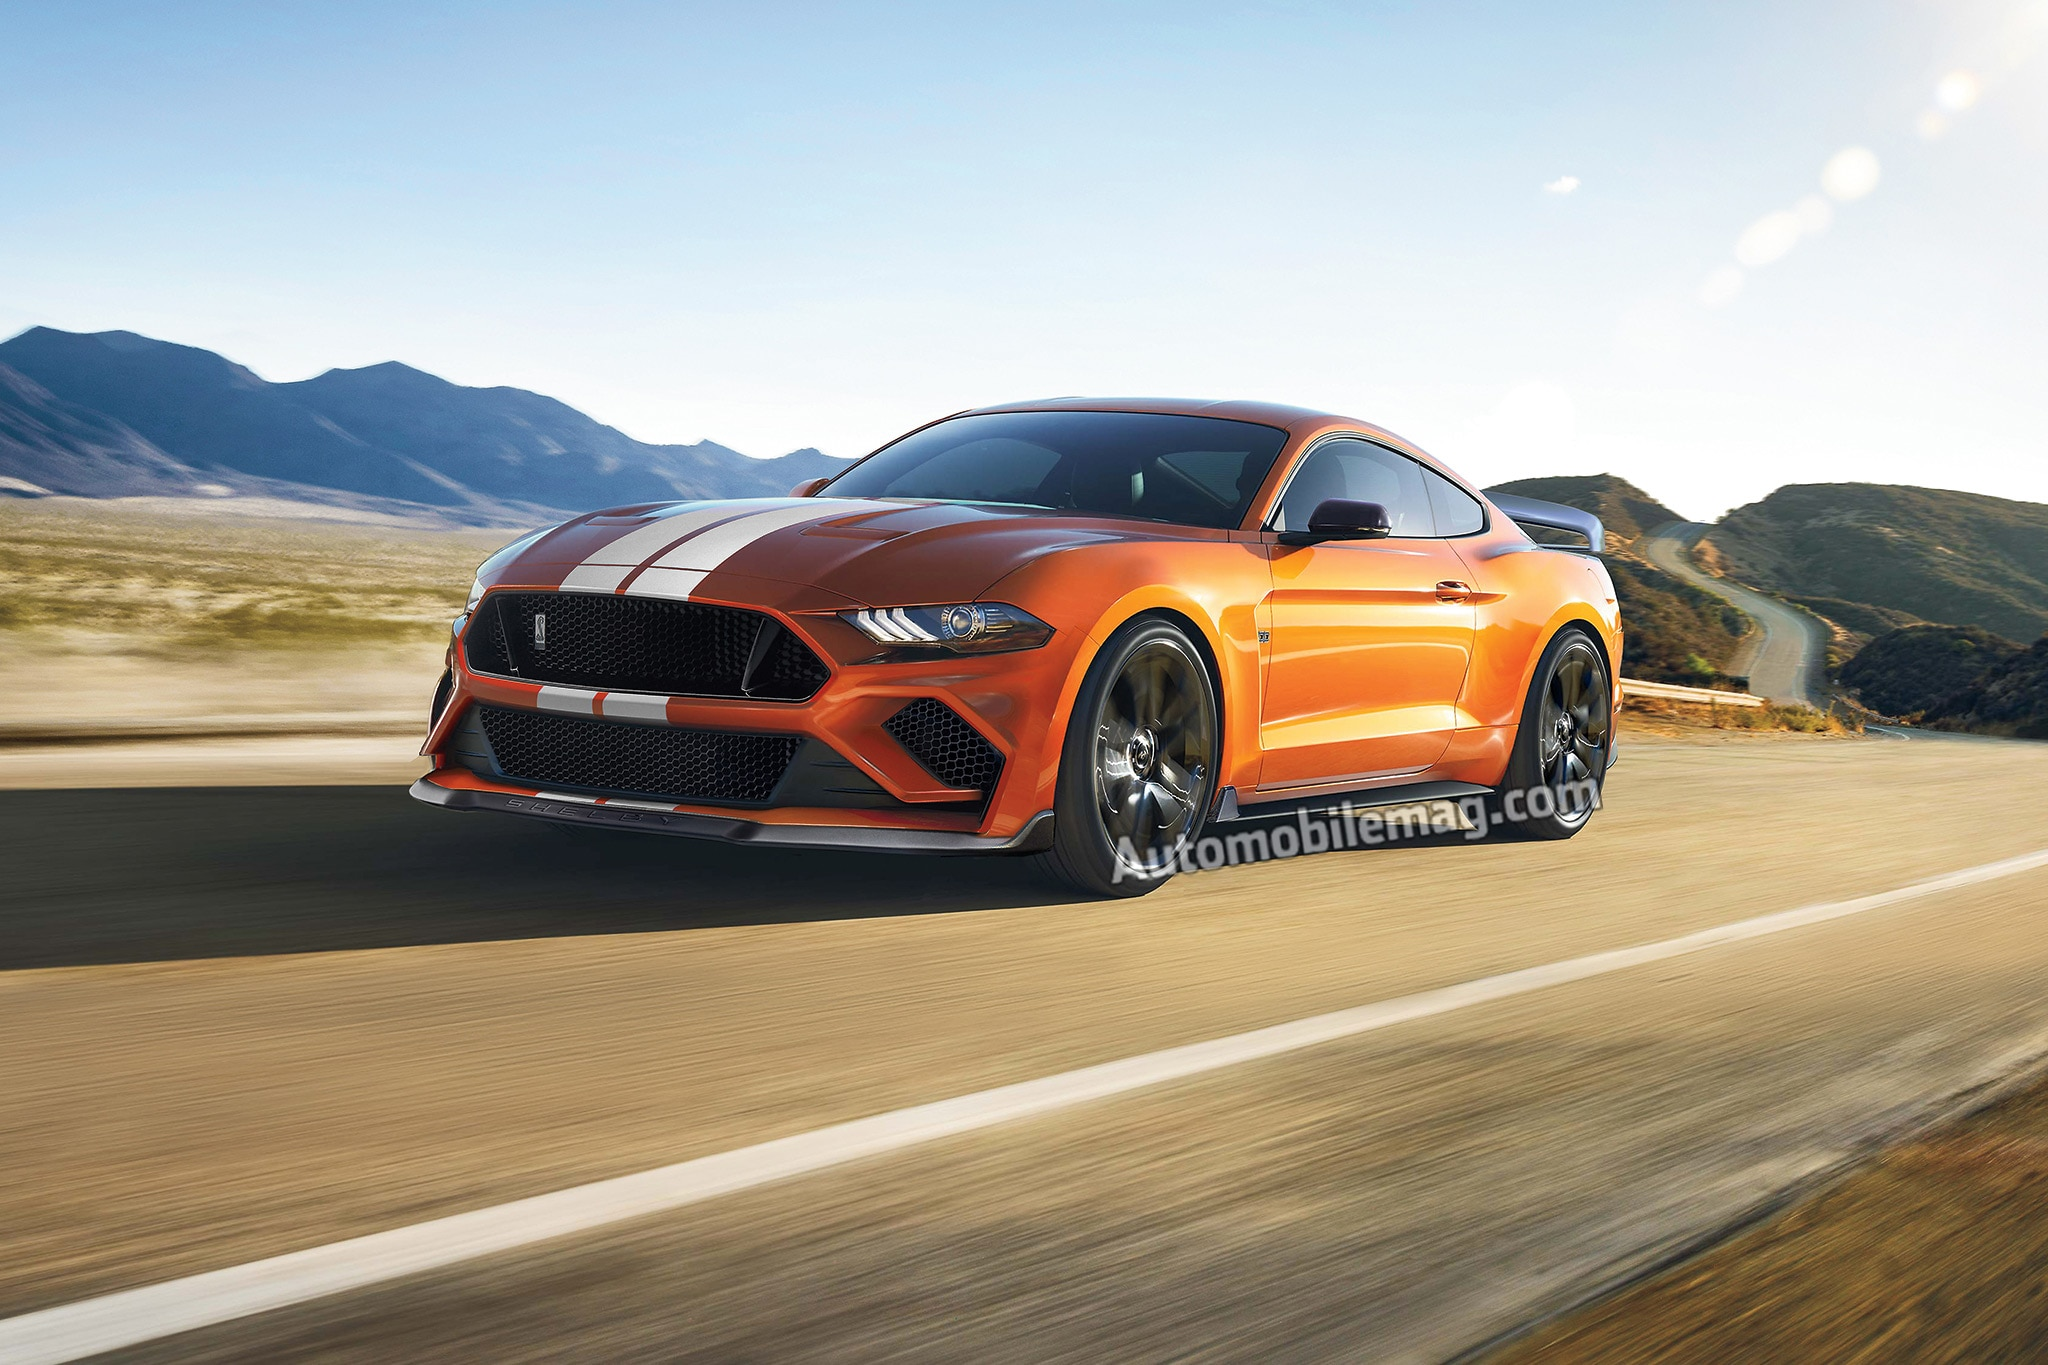 Animated Snake Wallpaper 2019 Ford Mustang Shelby Gt500 Confirmed With 700